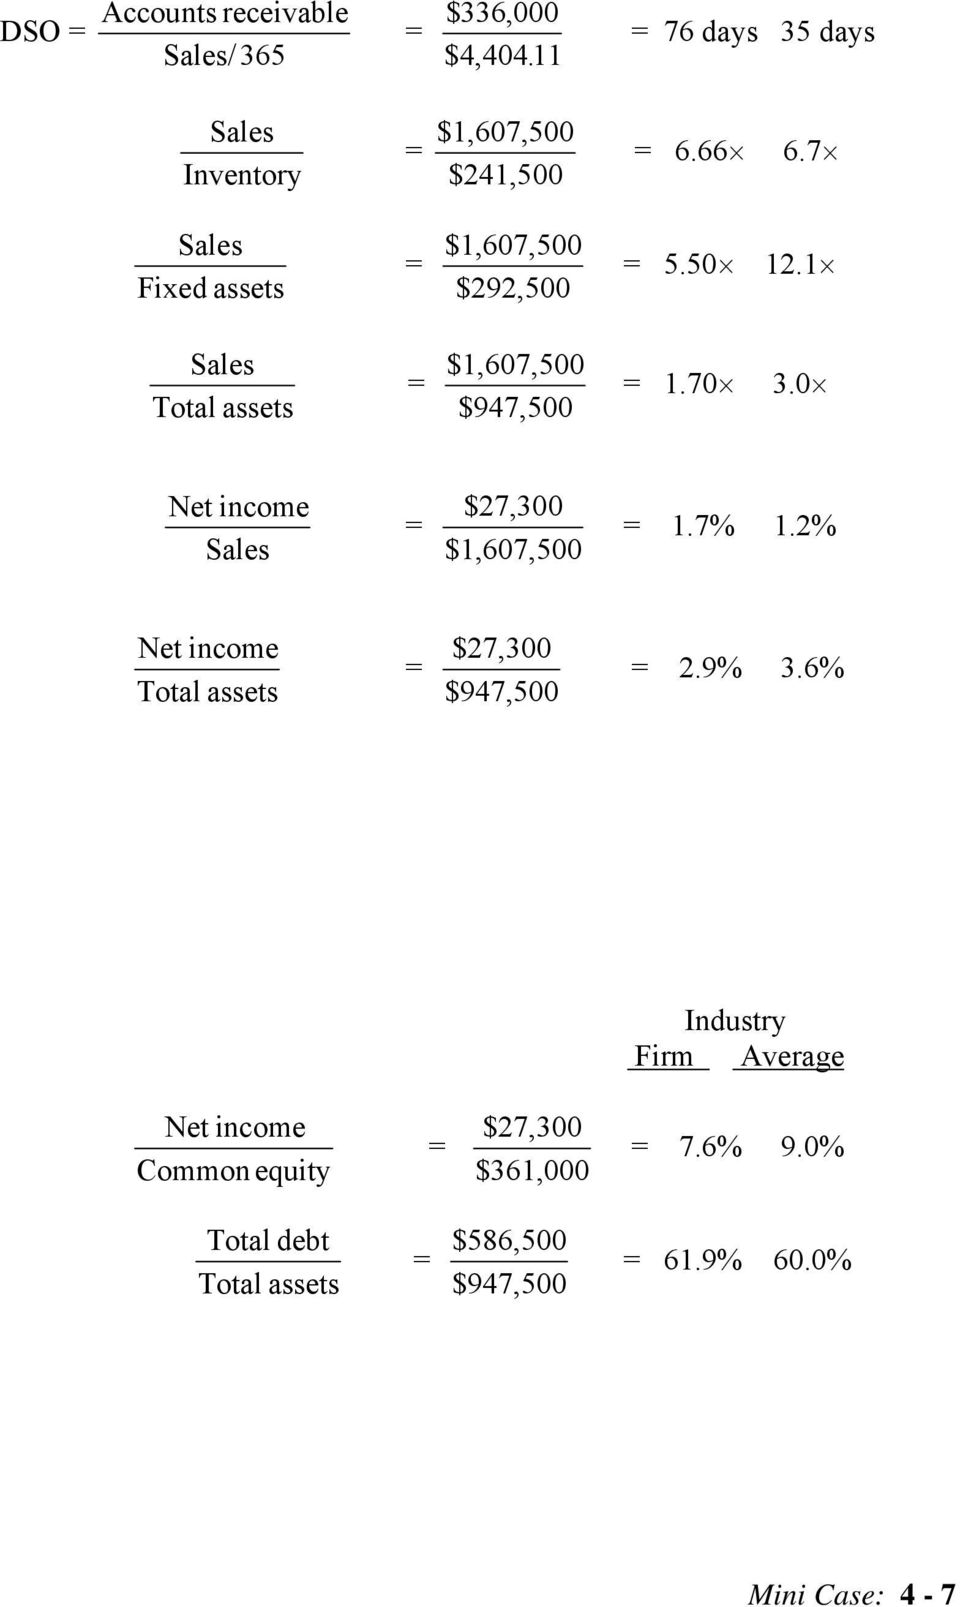 0 Net income $27,300 $1,607,500 1.7% 1.2% Net income Total assets $27,300 $947,500 2.9% 3.